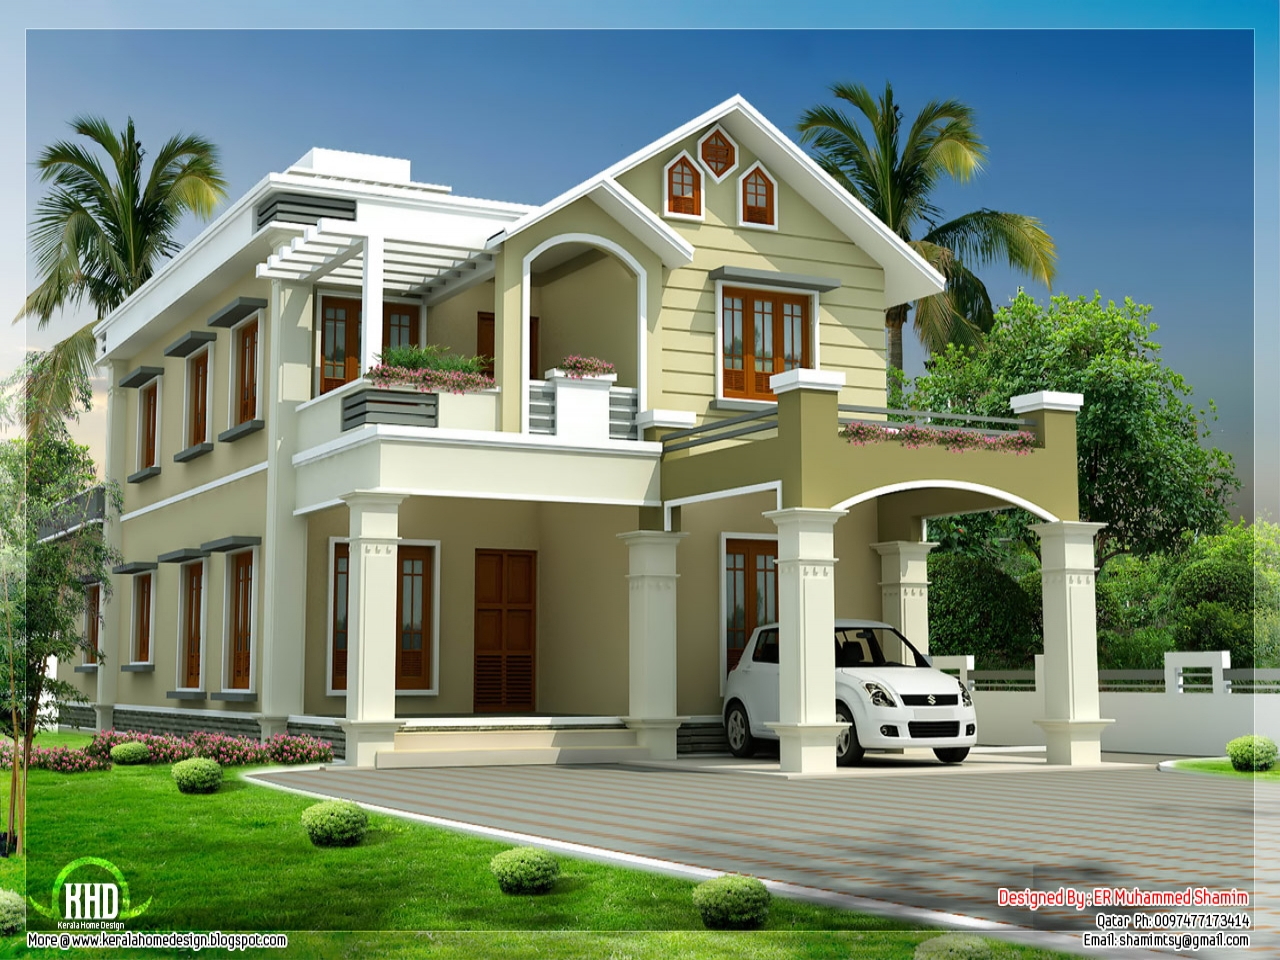 Modern Two Storey House Designs Design In